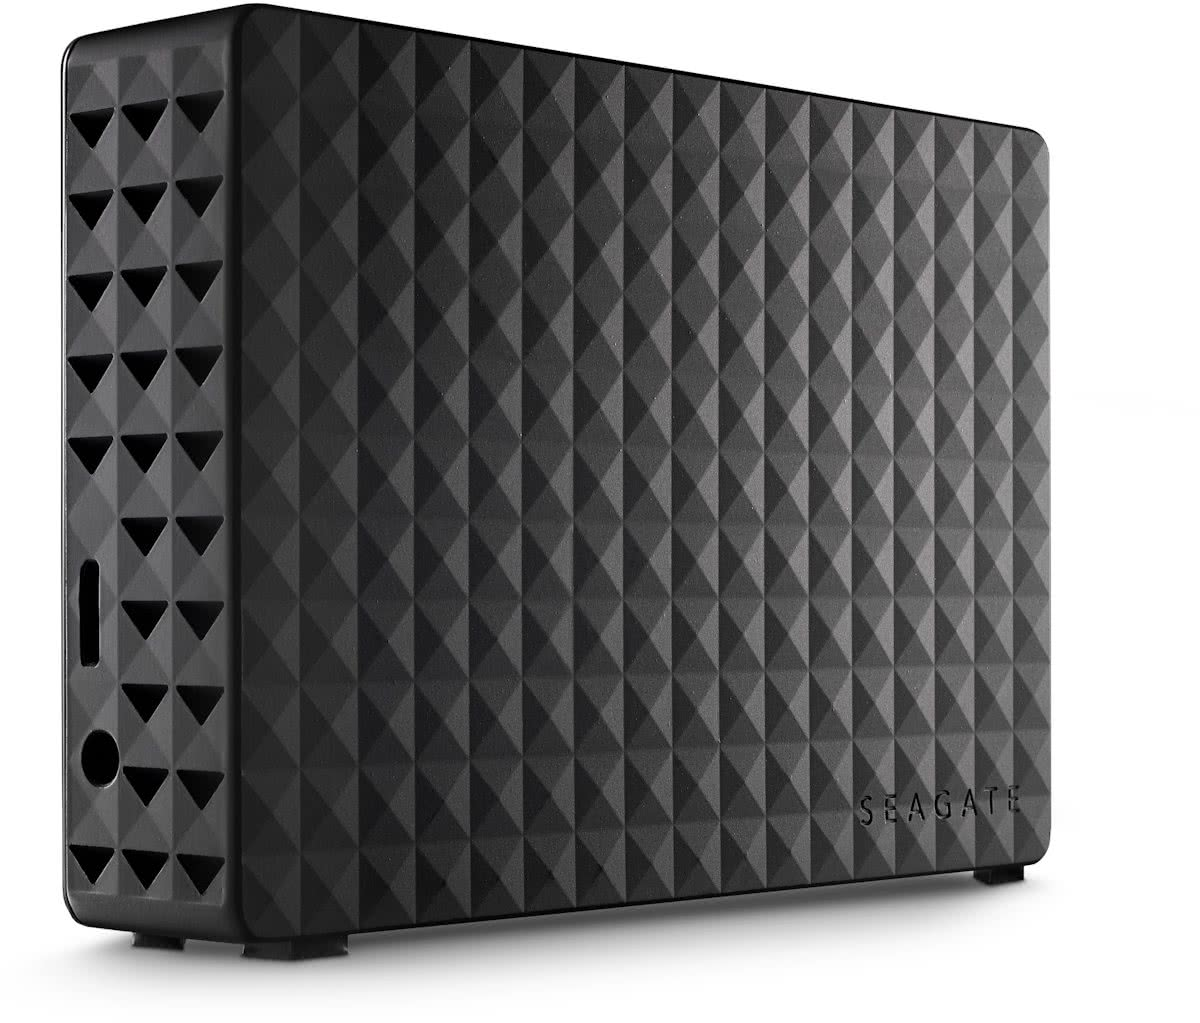 Expansion Desktop -   - 3 TB